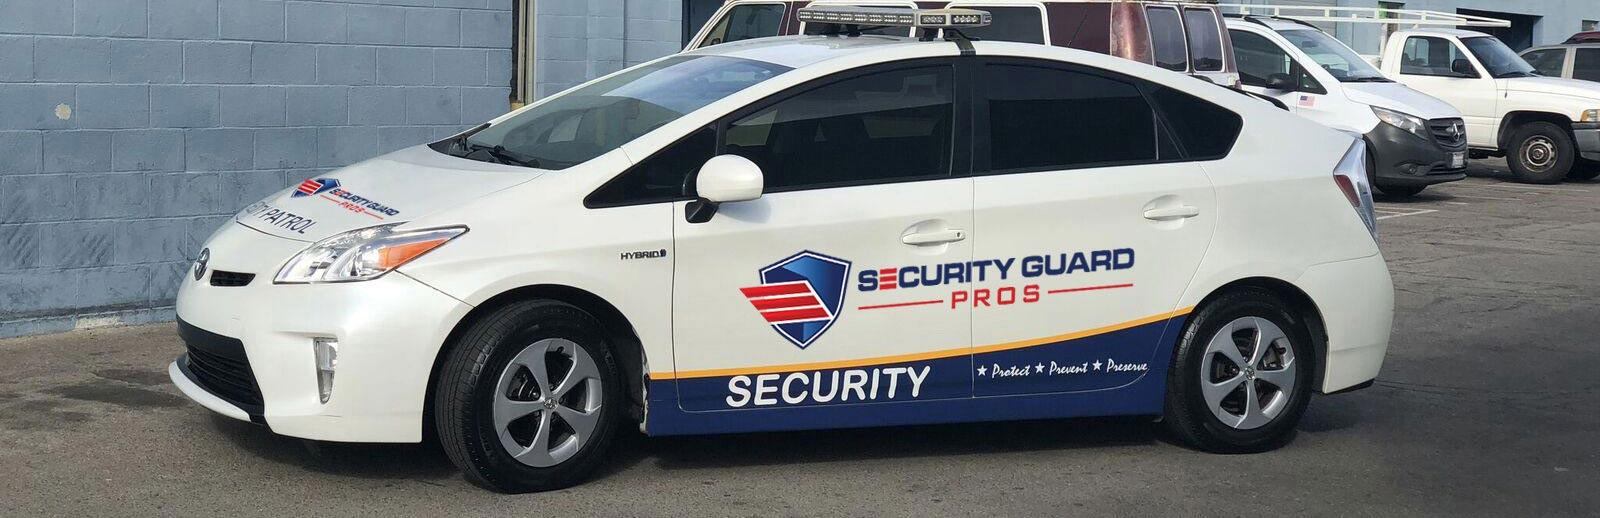 contact-losangeles-orange-county-security-company